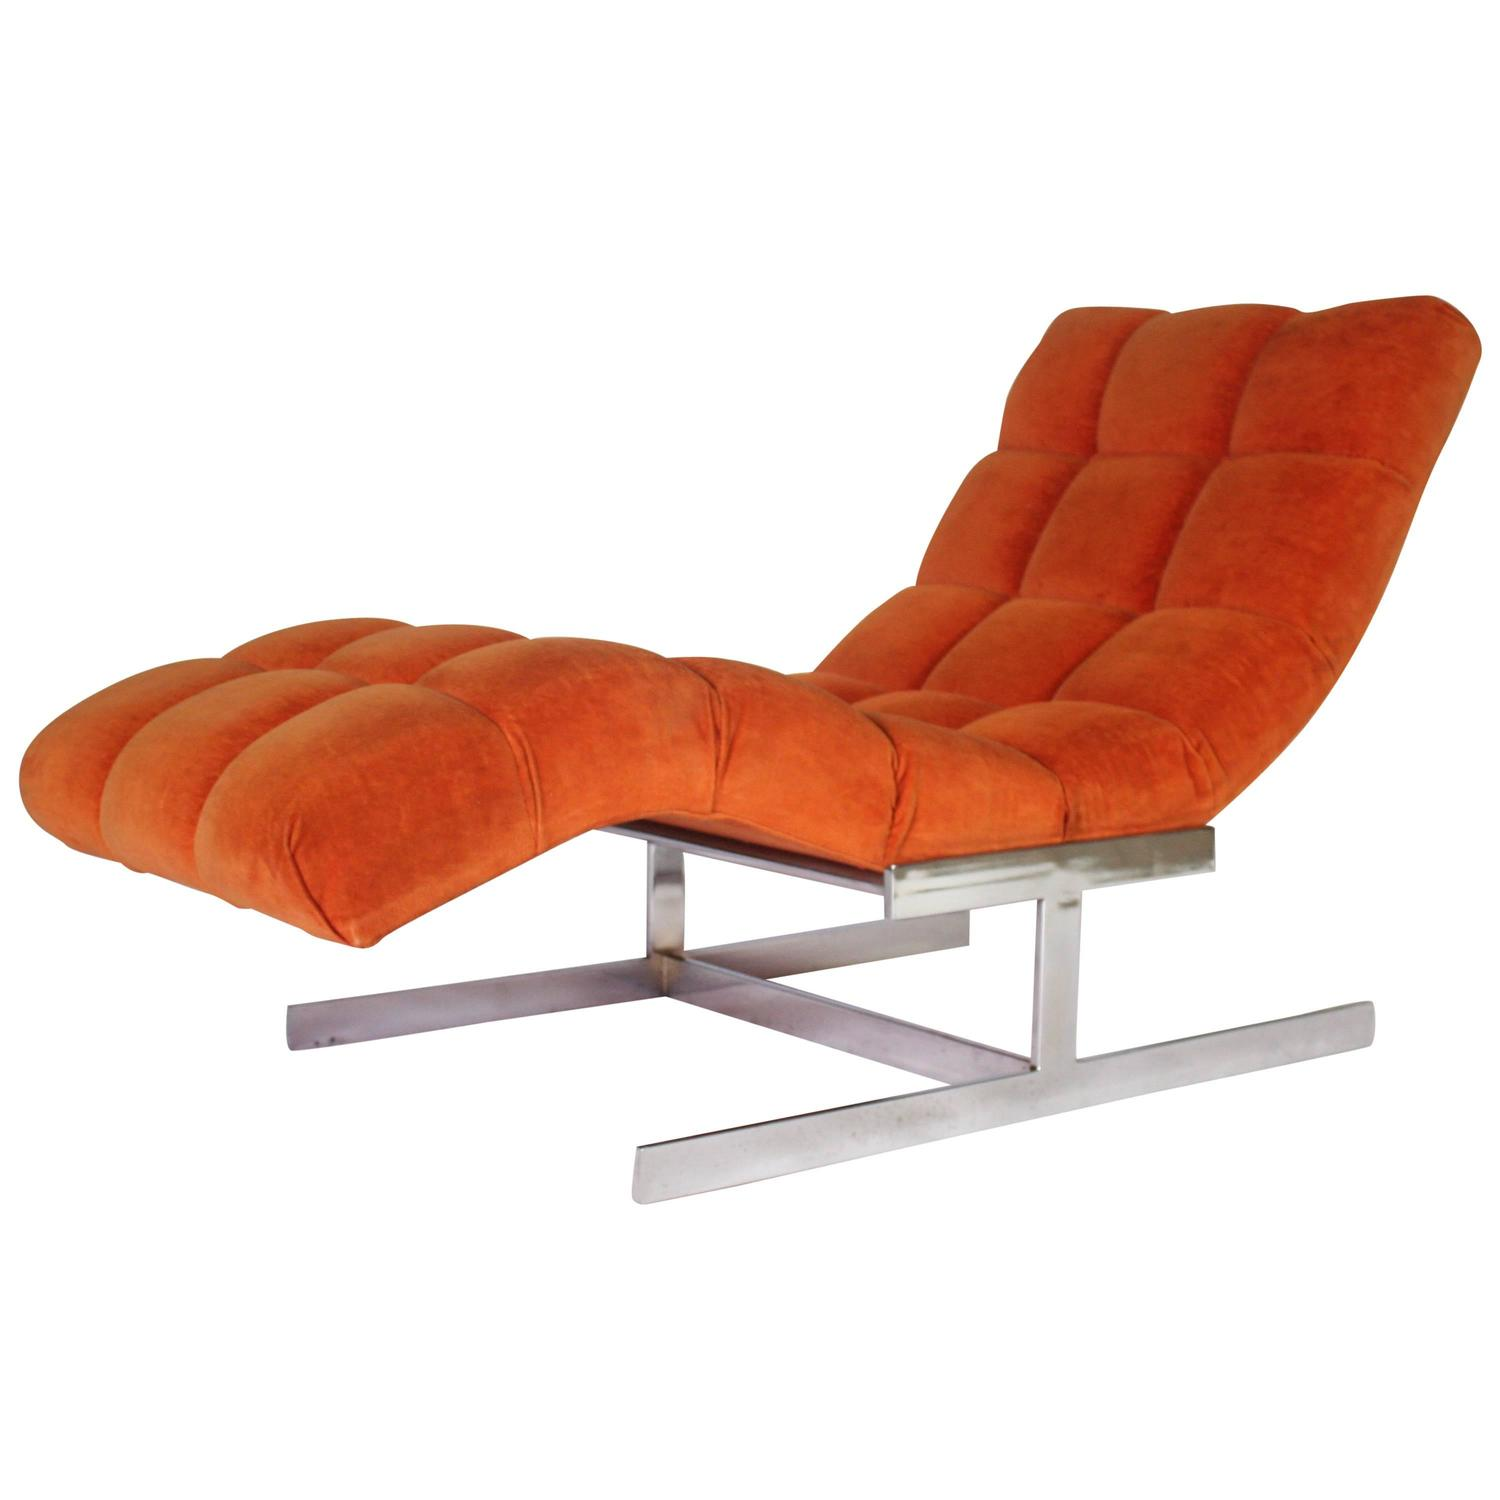 Milo baughman wave chaise longue at 1stdibs for Chaise longue orange